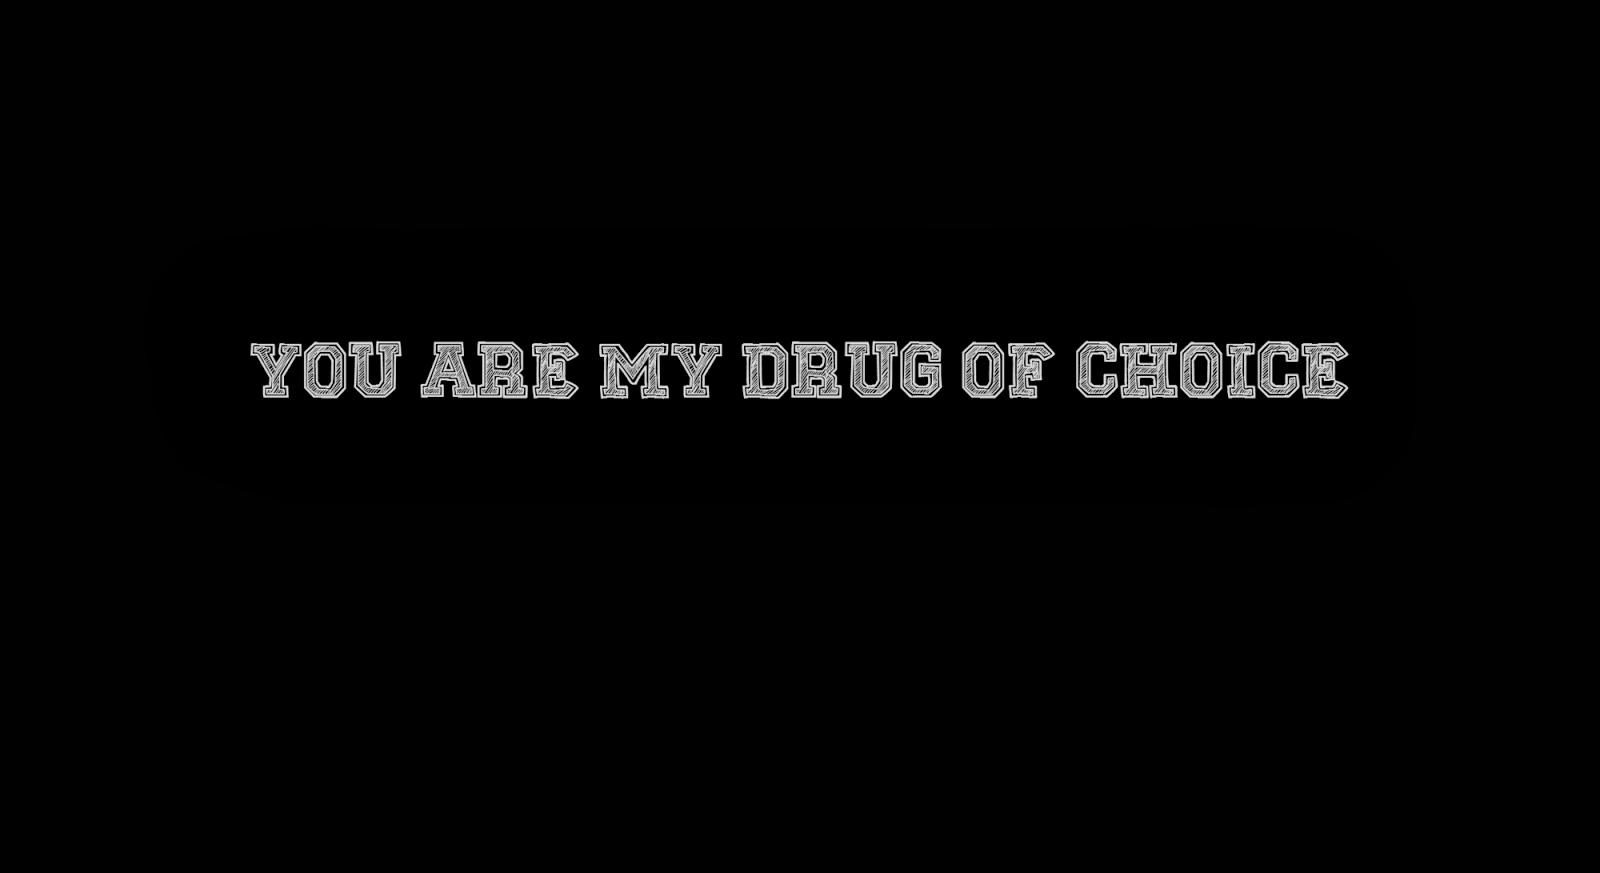 You are my drug of choice